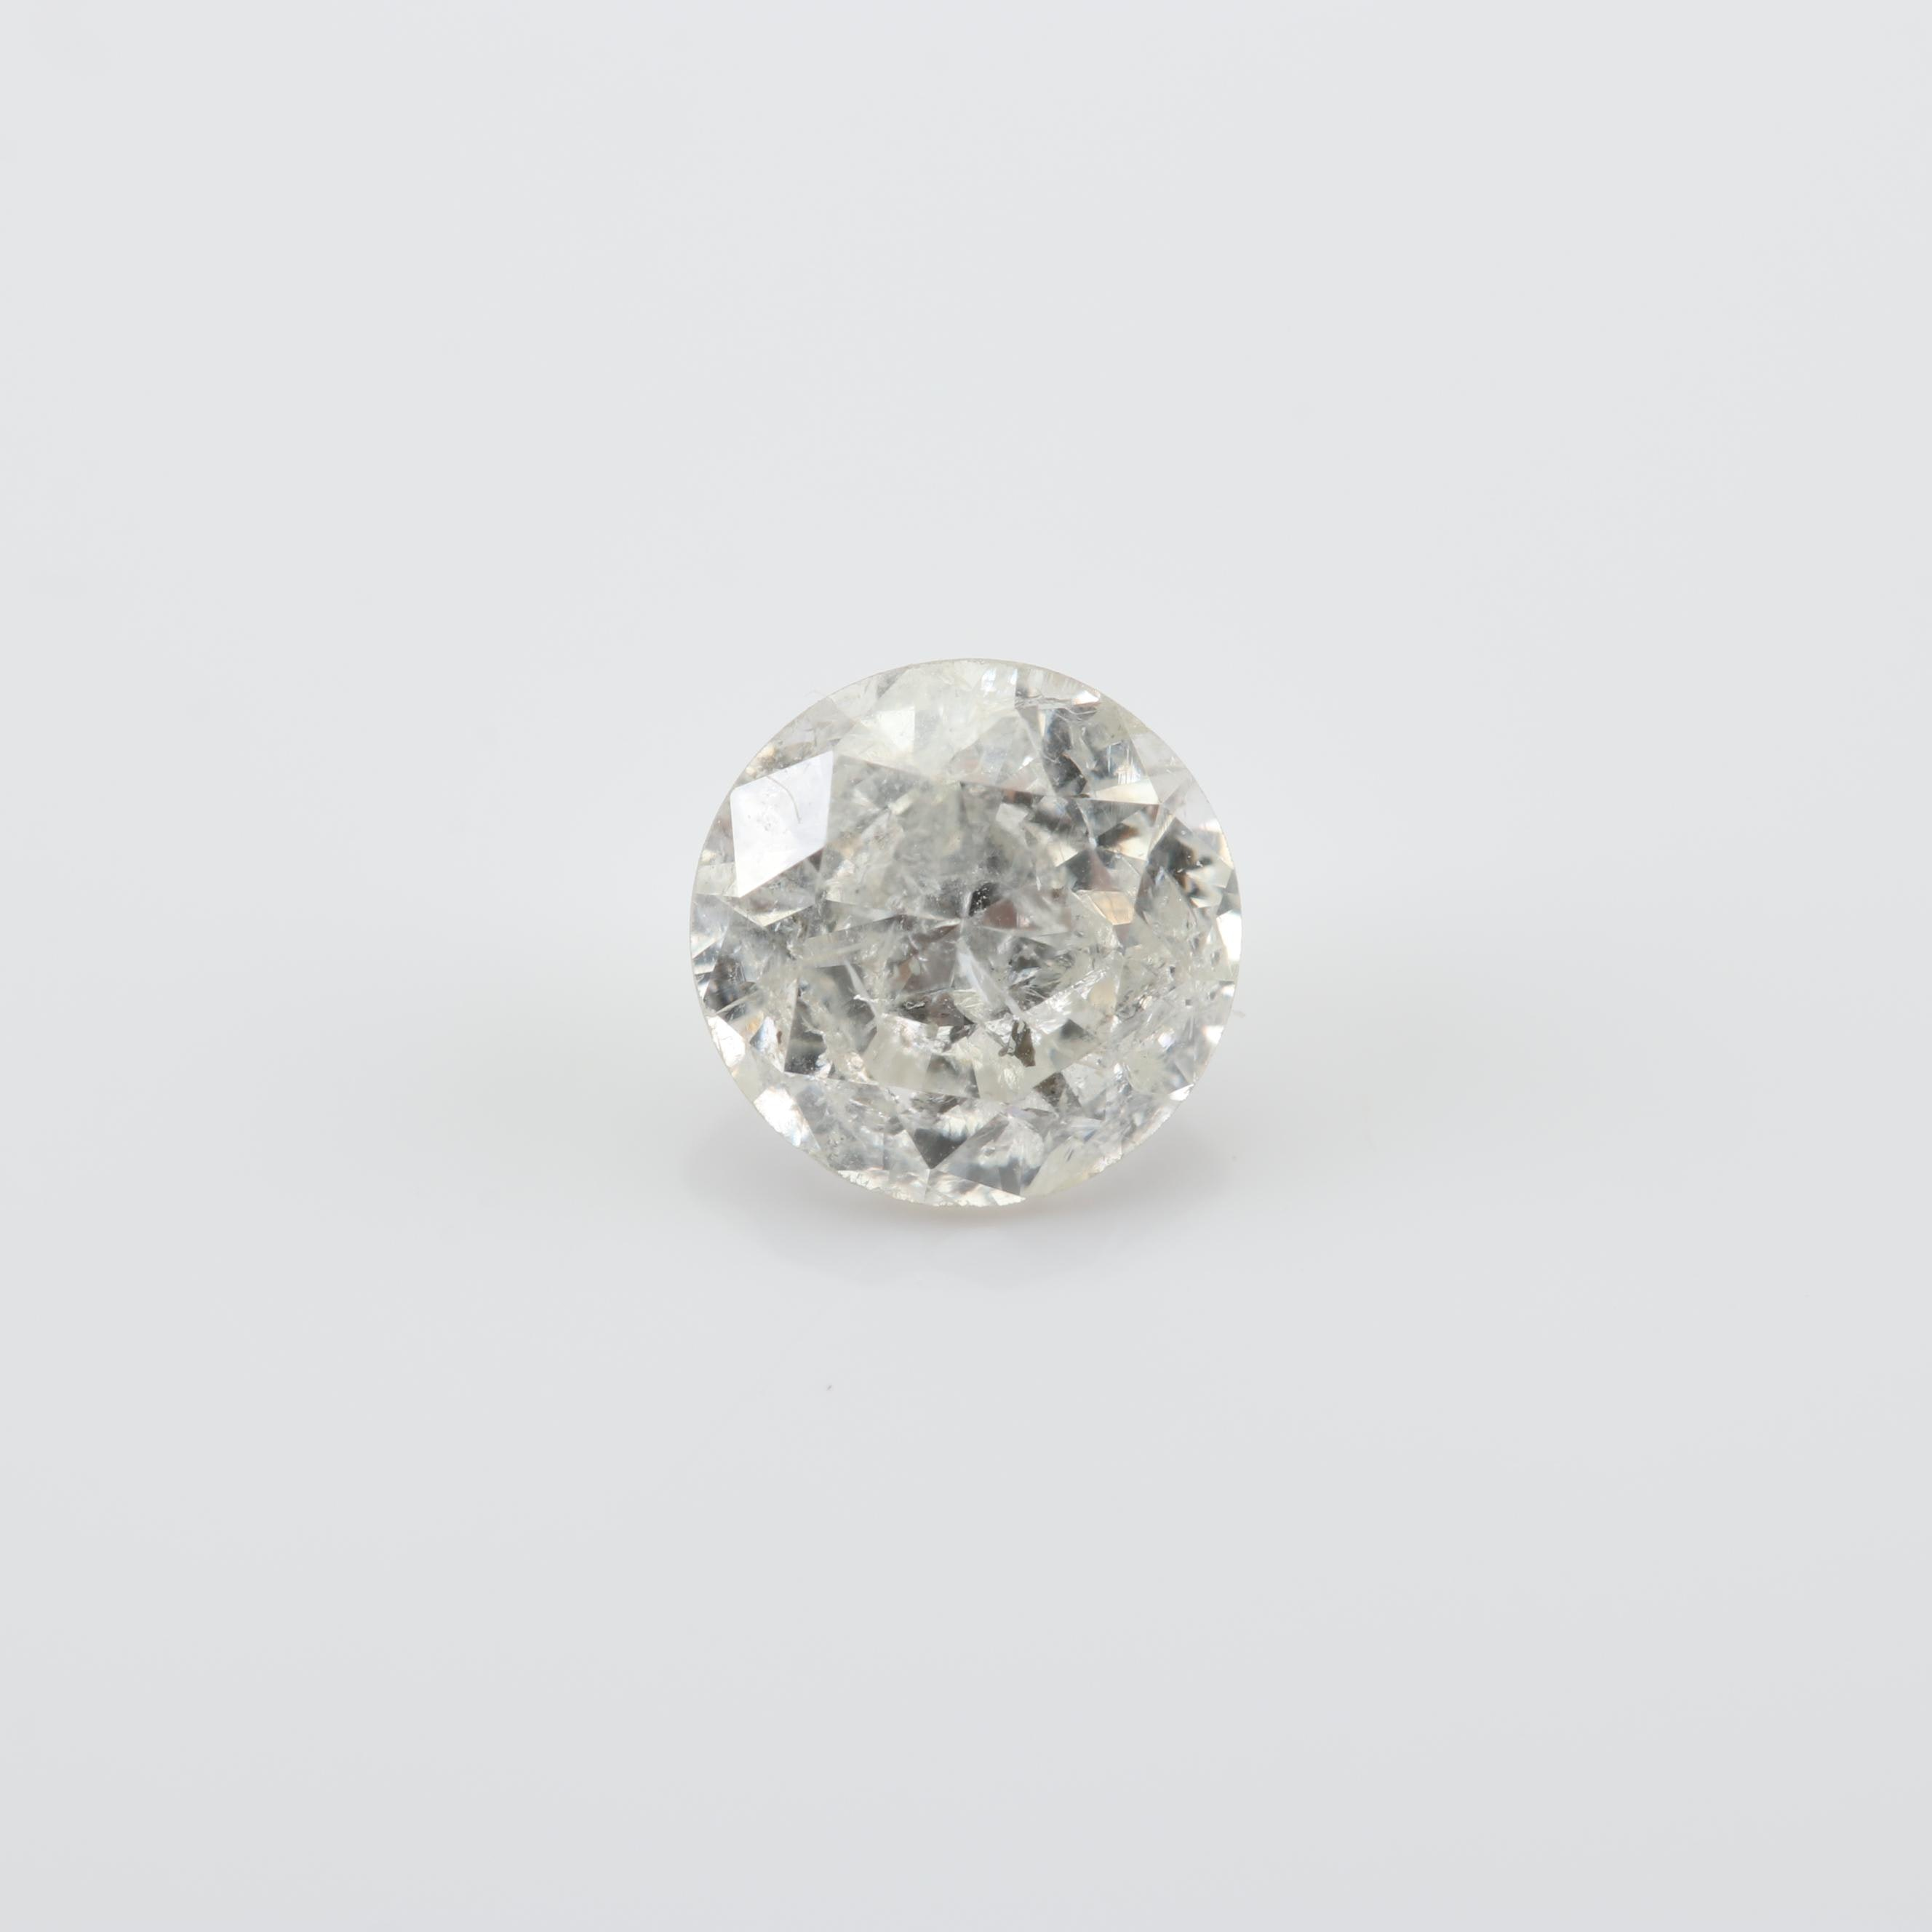 Loose 0.32 CT Diamond